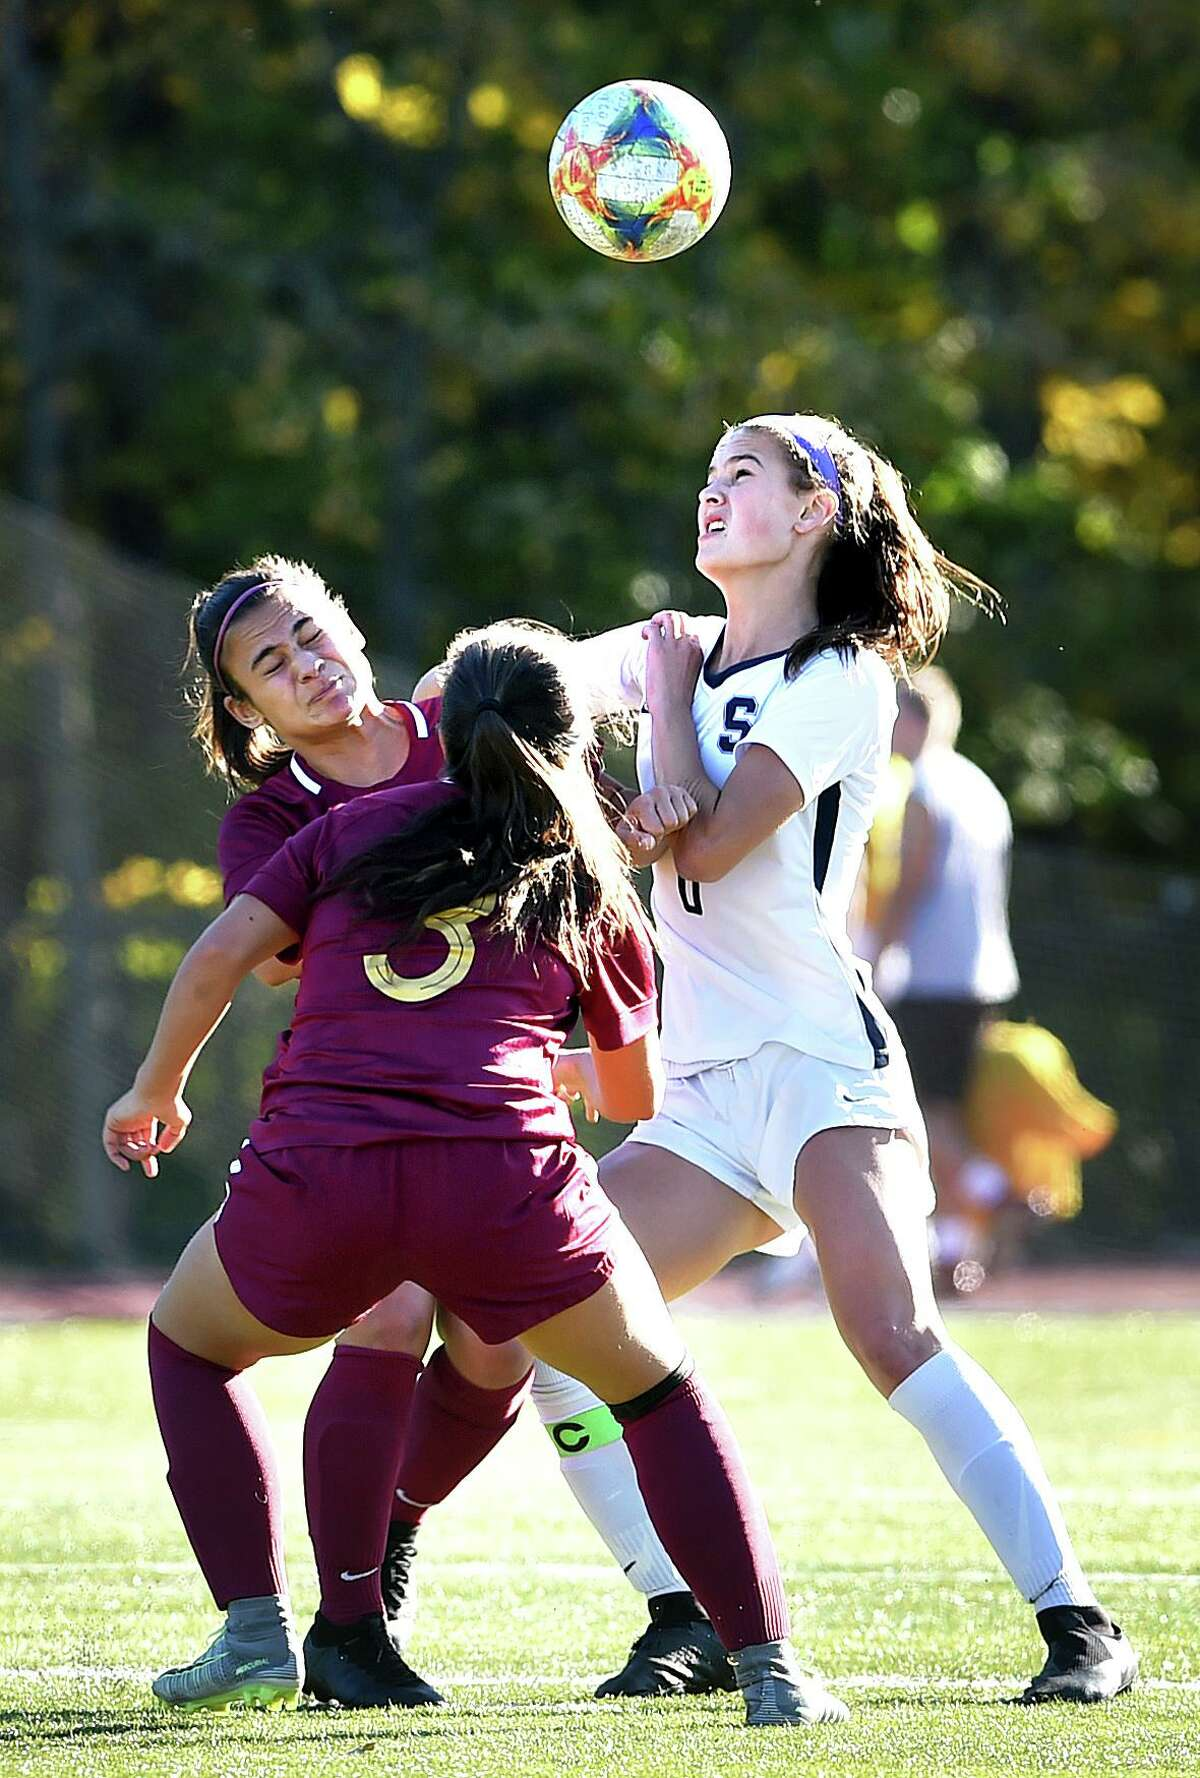 From left, St. Joseph's Anastasia Kydes and Andriana Cabral converge on a ball with Staples' Mia Gonzalez on Monday.